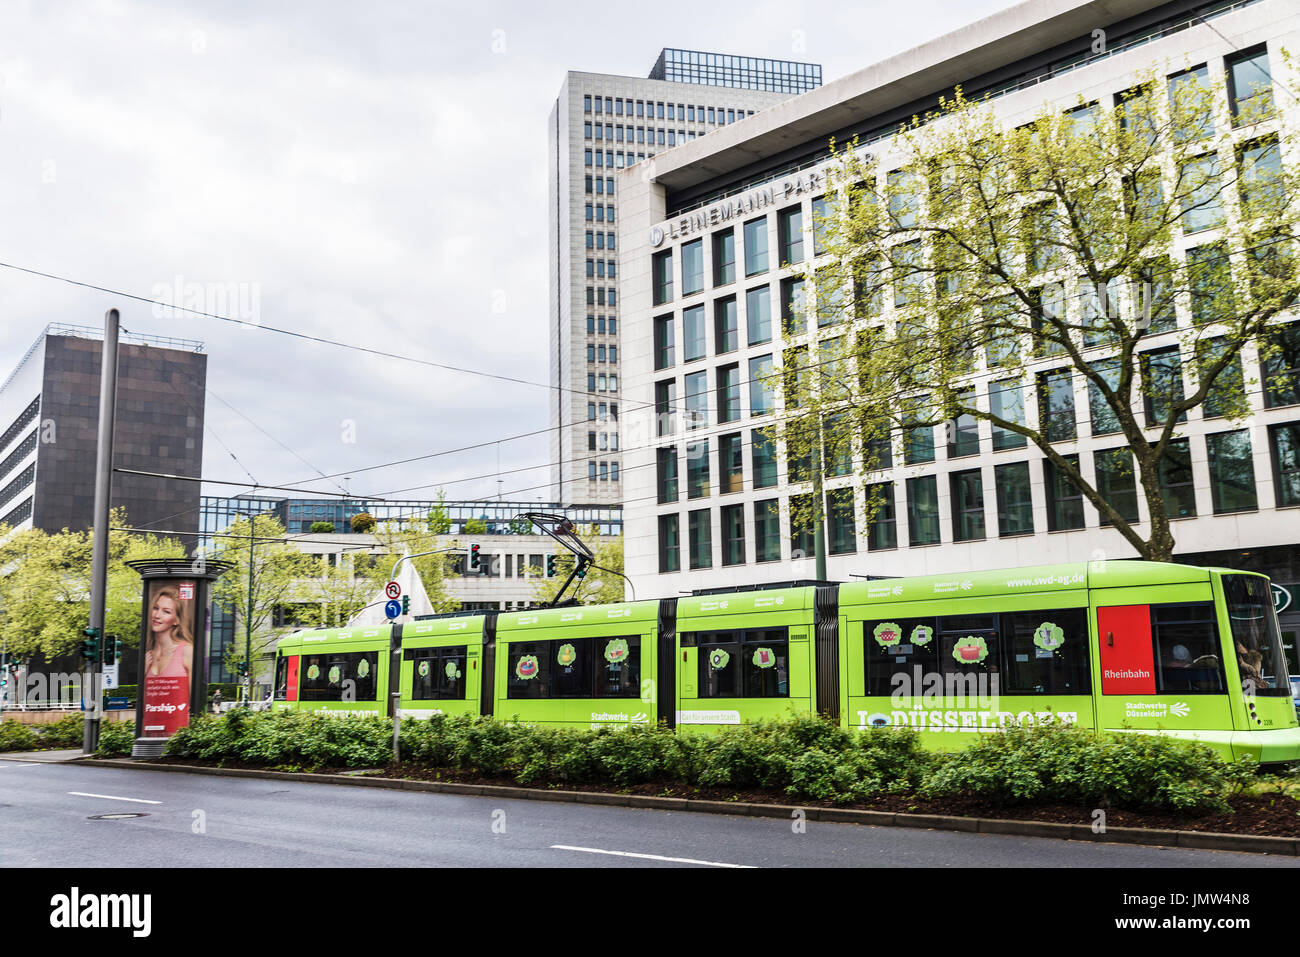 Duesseldorf germany tram stockfotos duesseldorf germany tram bilder alamy - Architekten in dusseldorf ...